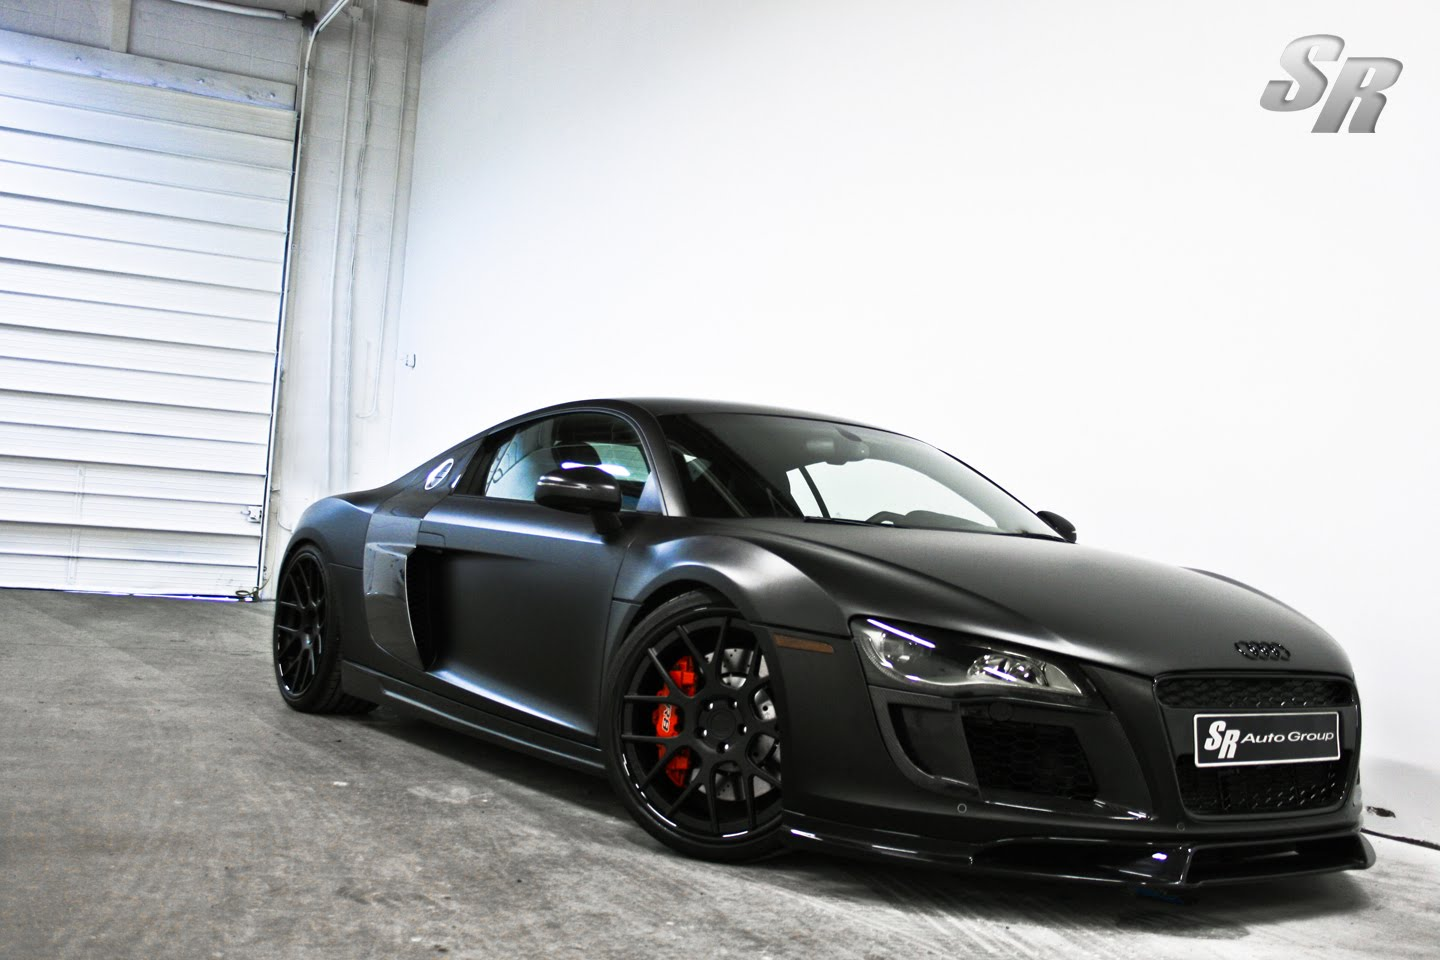 Toyota Supra Roof Rack Audi R8 V10 'Project Valkyrie' by SR Auto Group ...